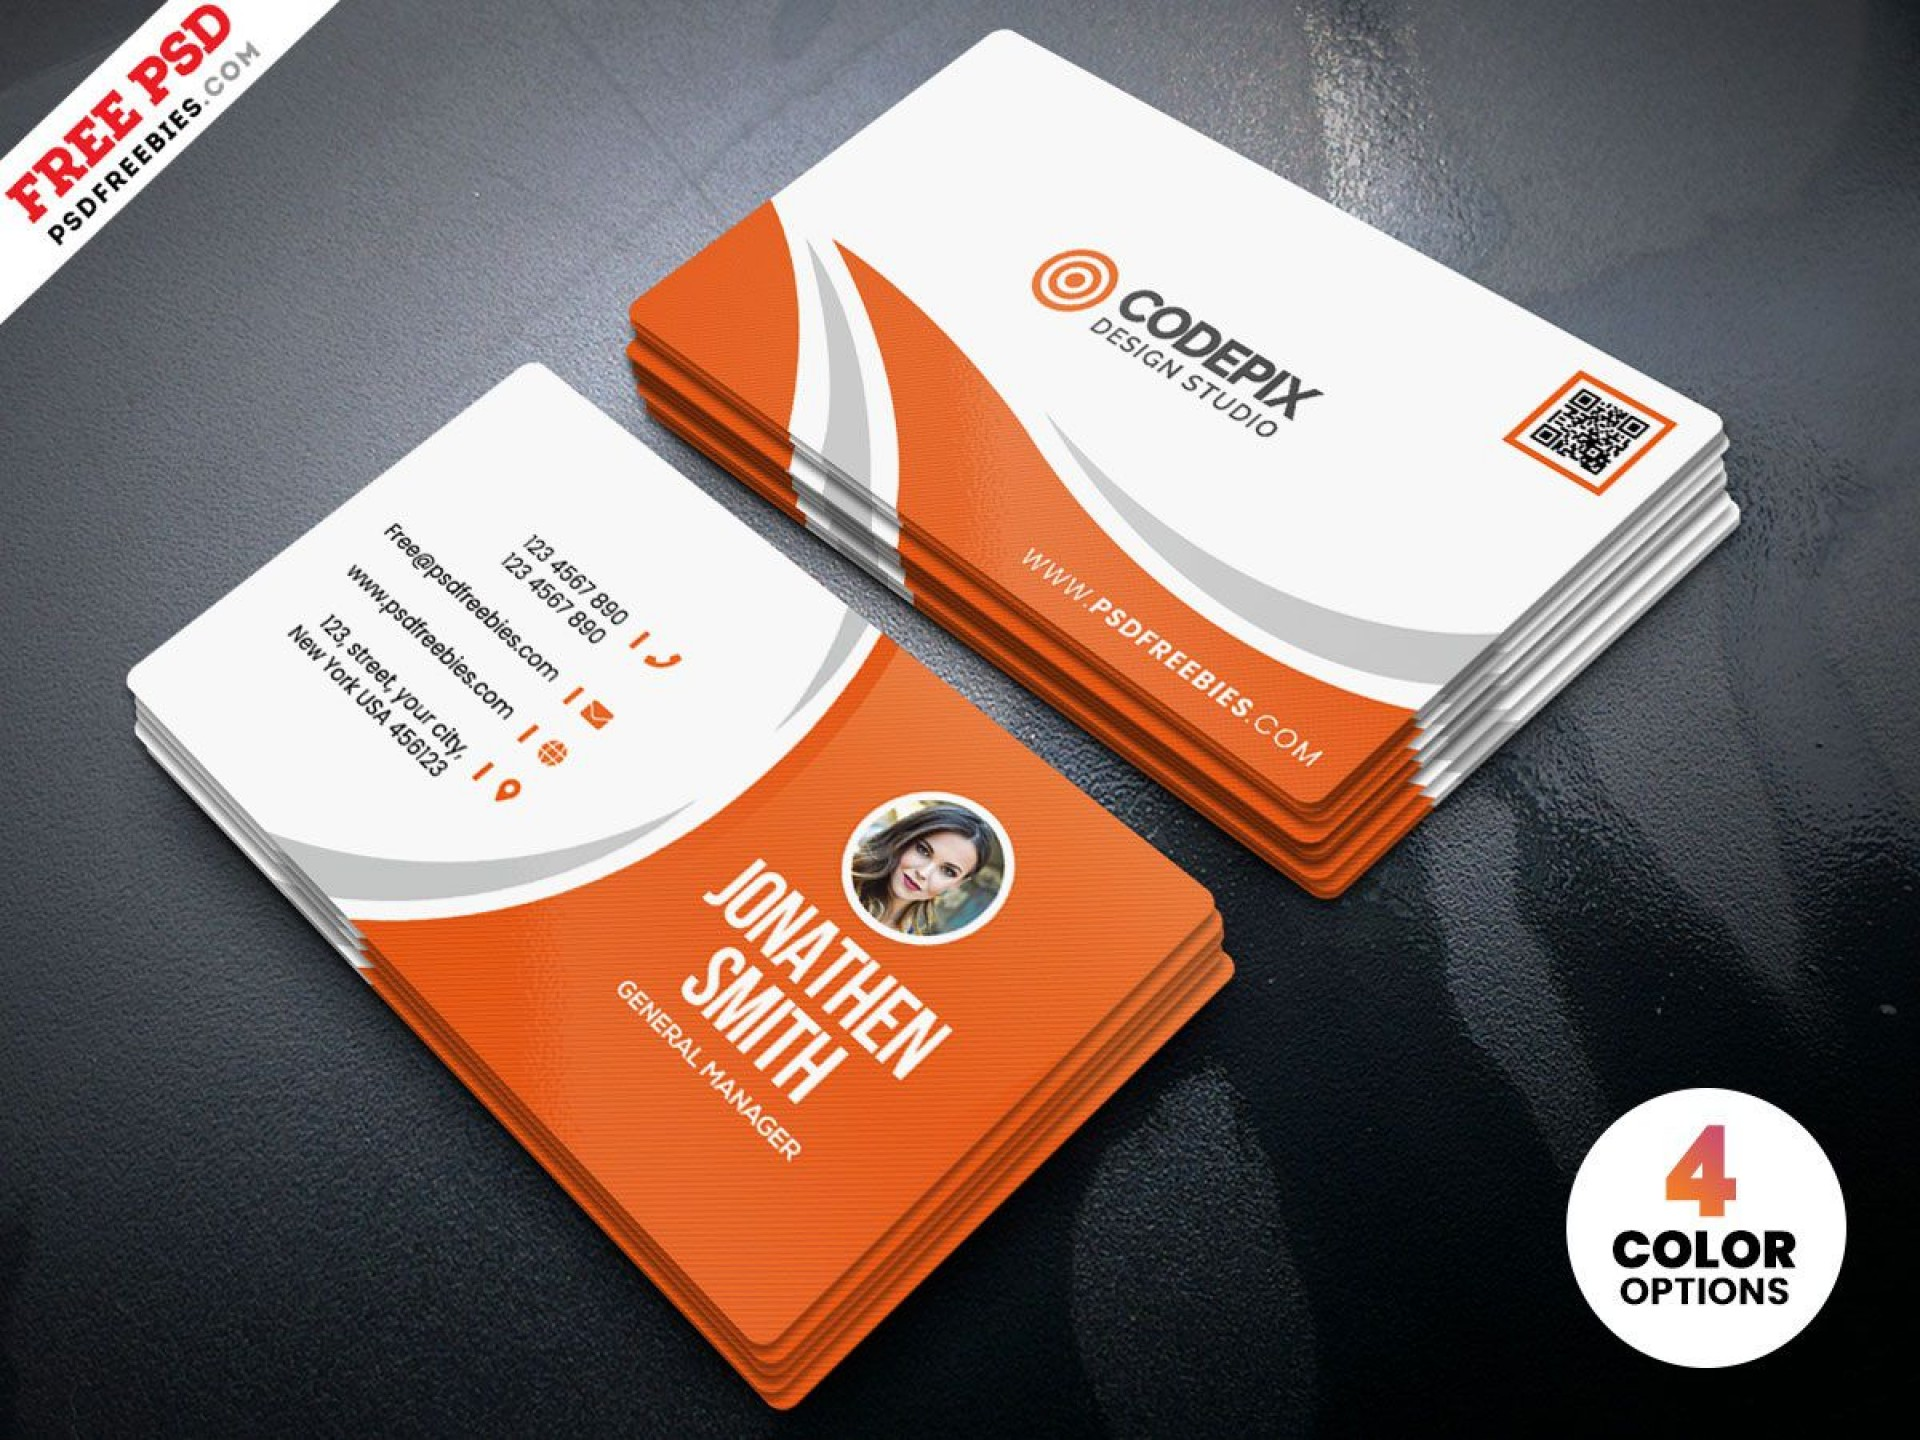 010 Phenomenal Simple Visiting Card Template Highest Clarity  Templates Busines Psd Design File Free Download1920